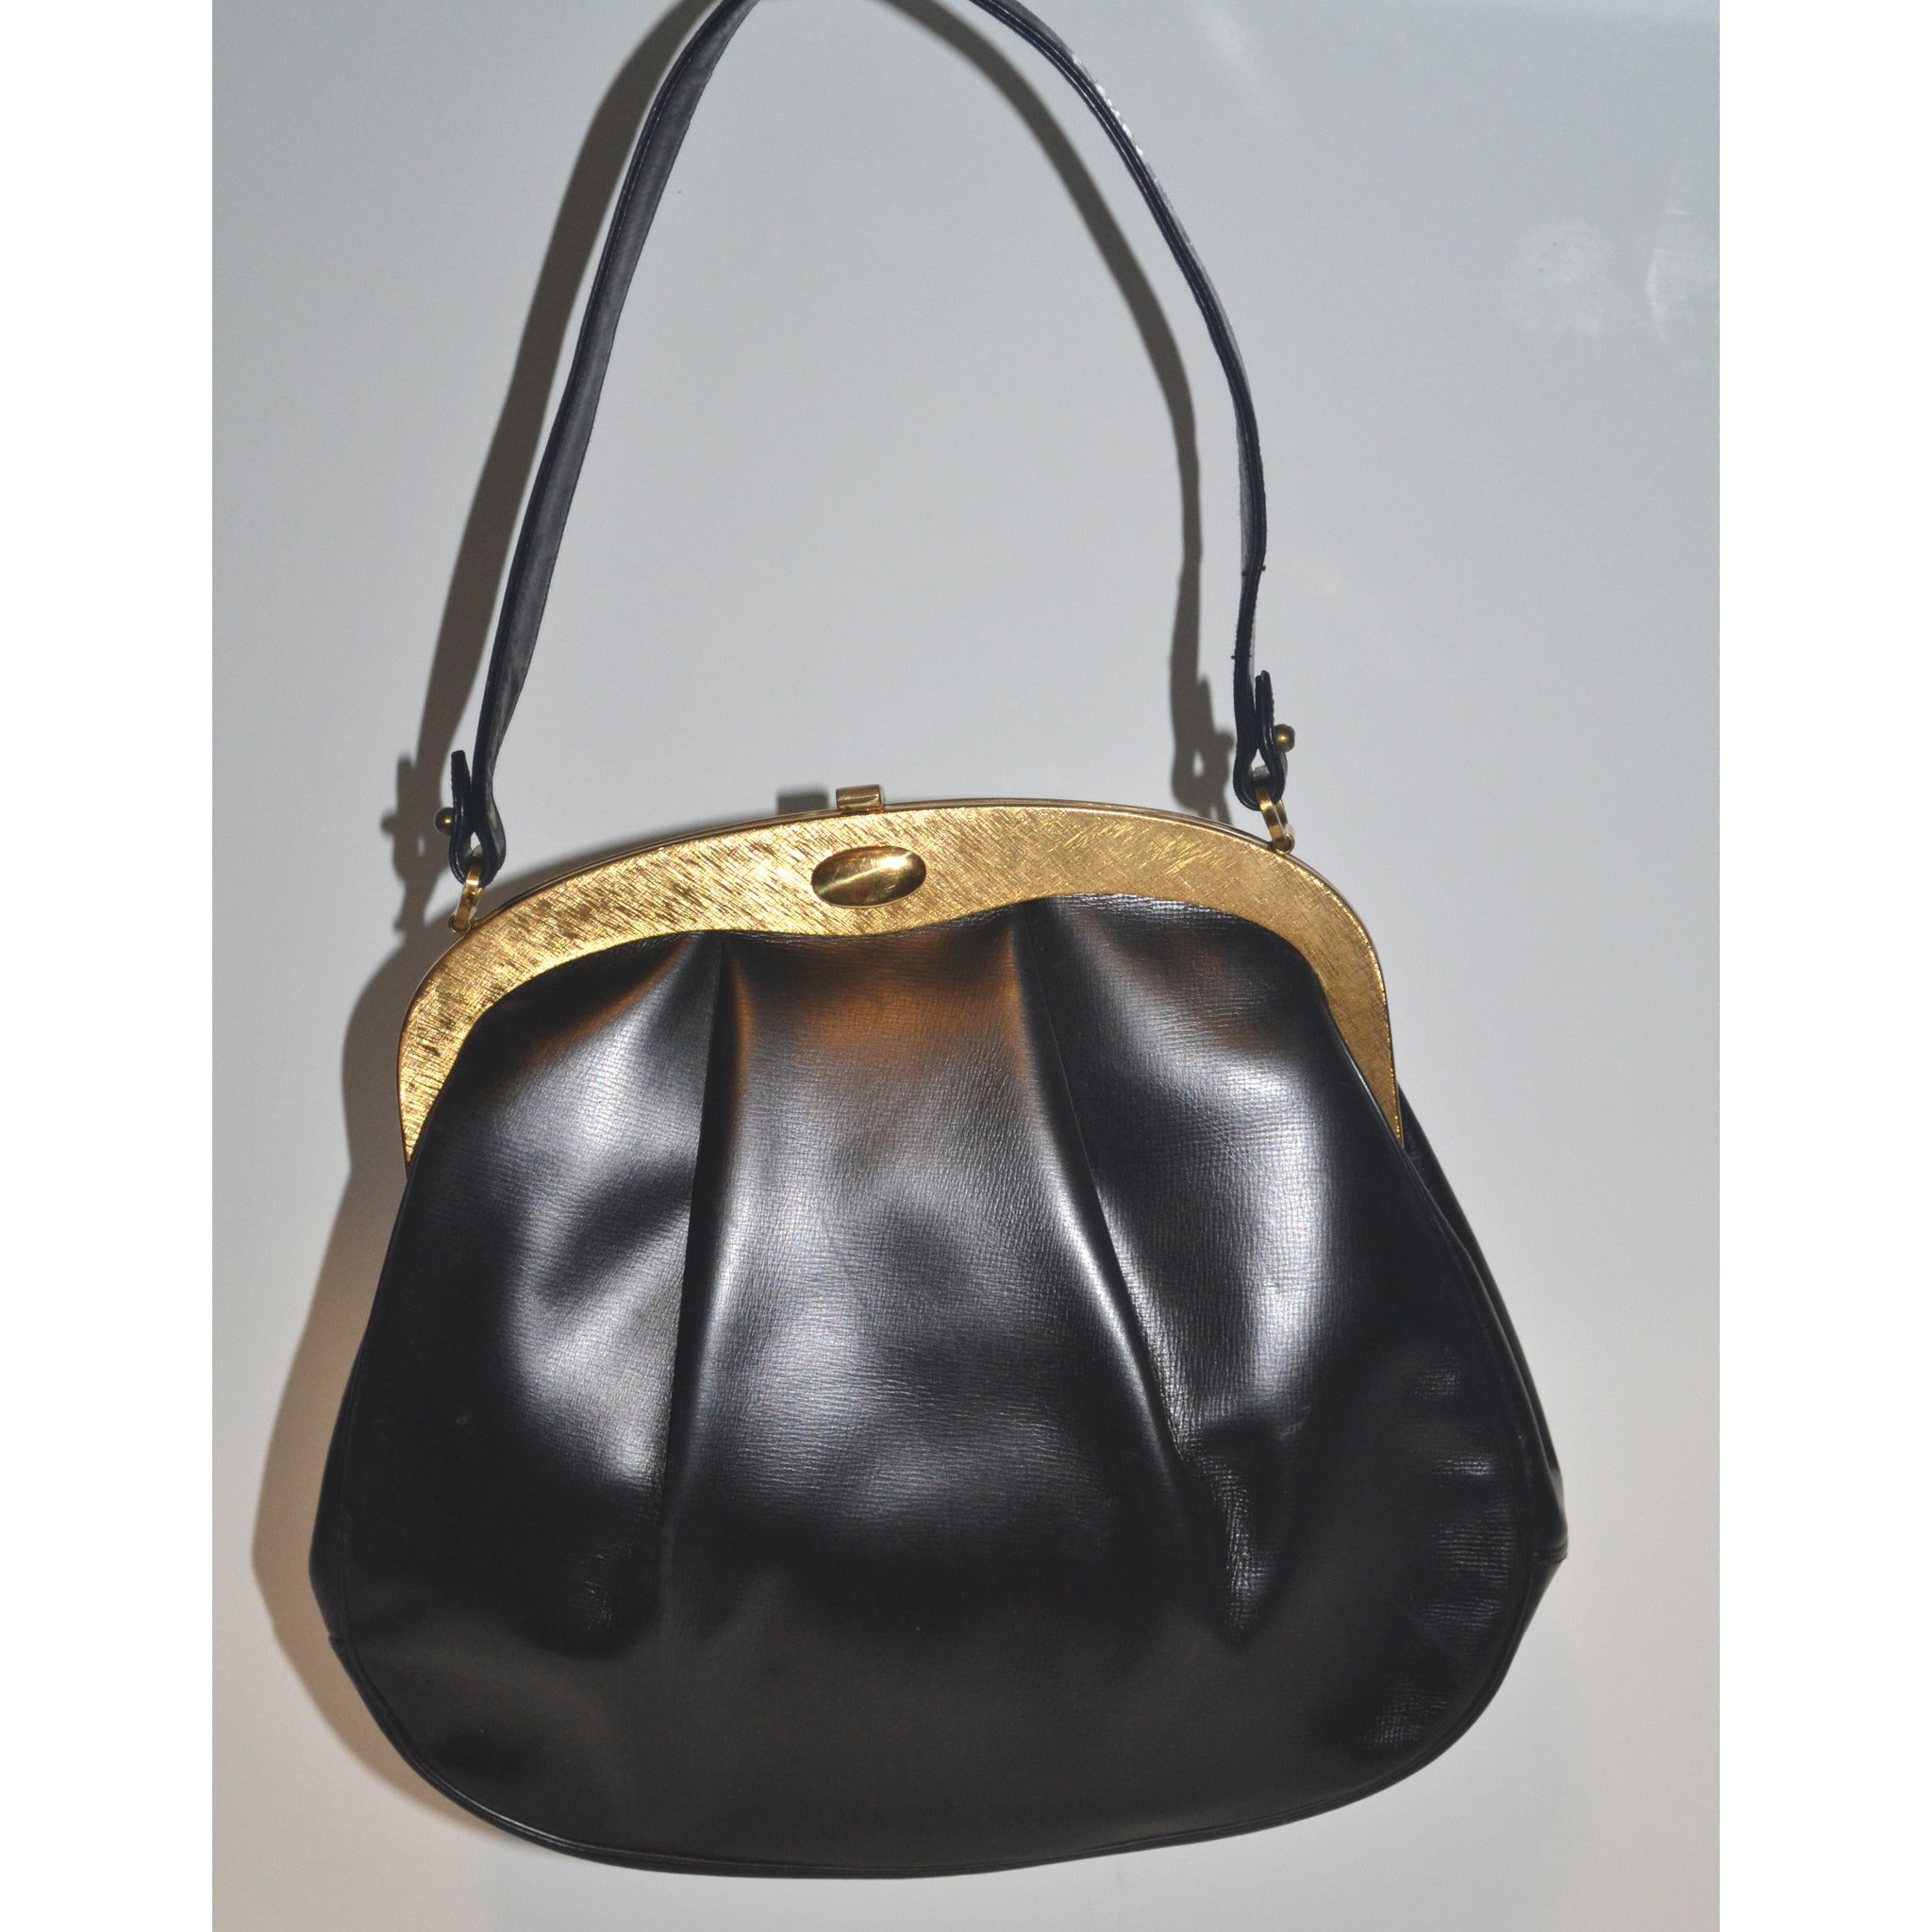 Vintage Black Leather Pleated Purse By Susan Gail